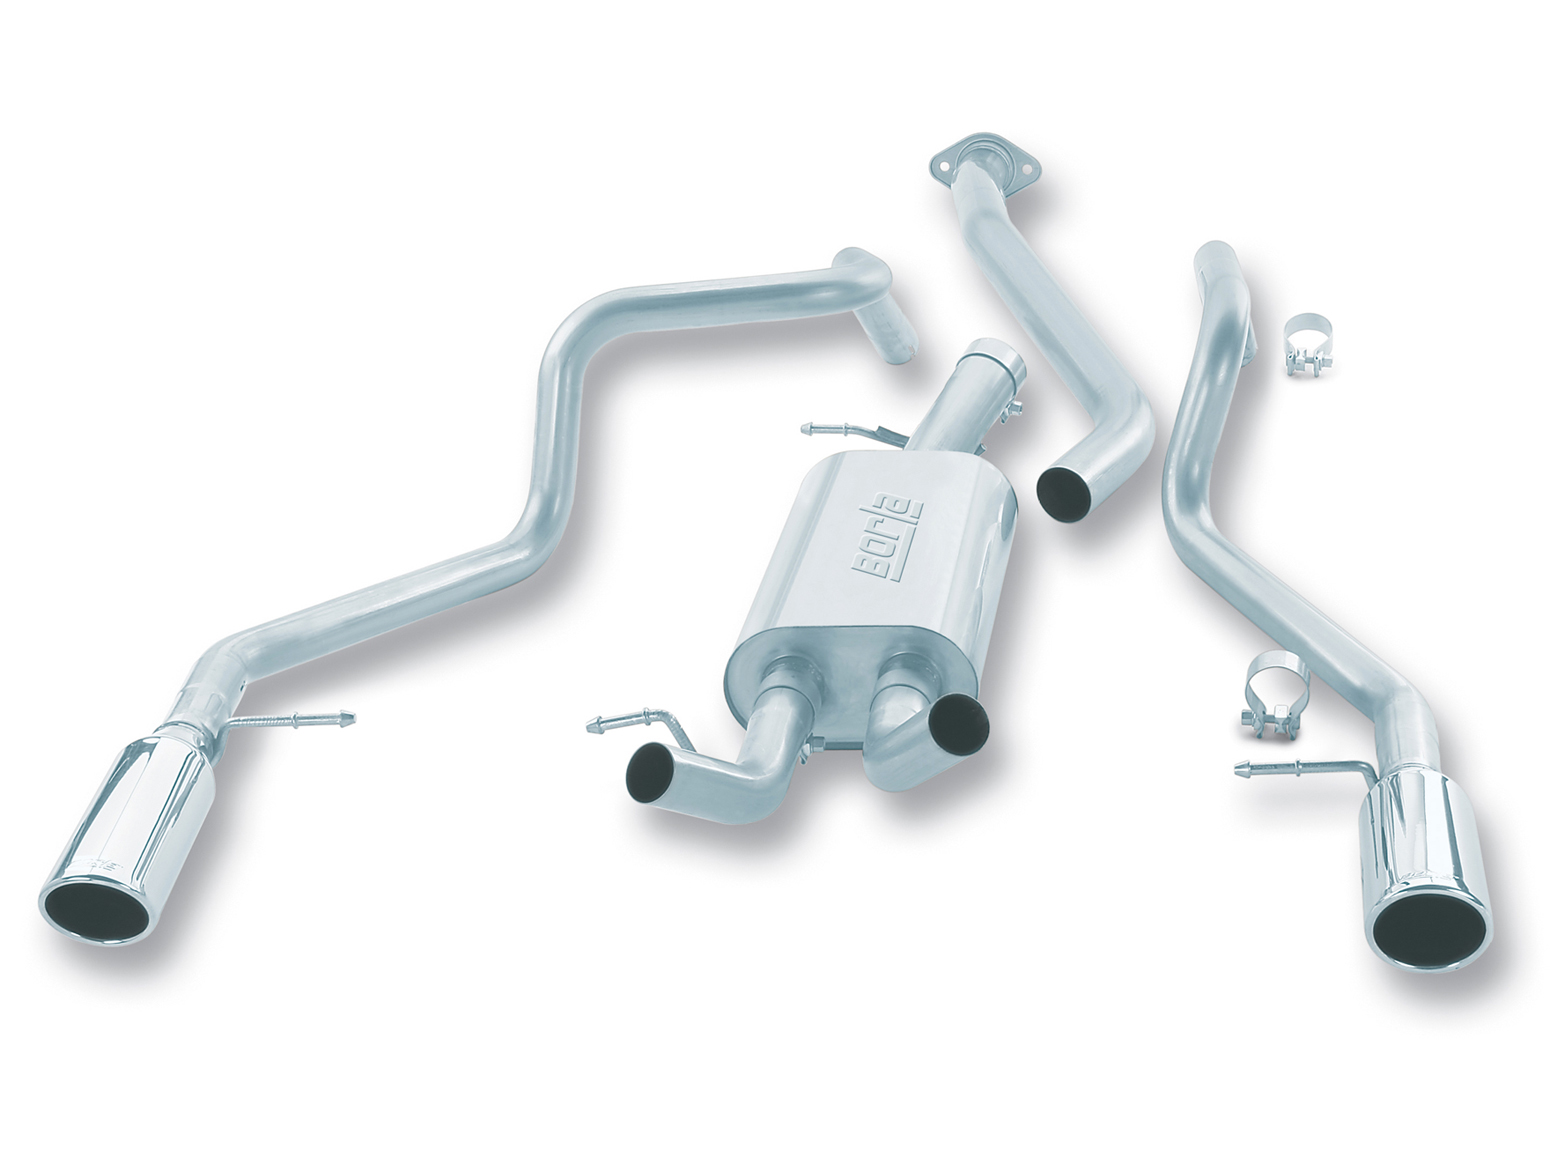 1999-2007 Chevy/GMC 1500 Borla Touring Catback Exhaust System w/Rear Side Single Tip - Ext. Cab/Short Box